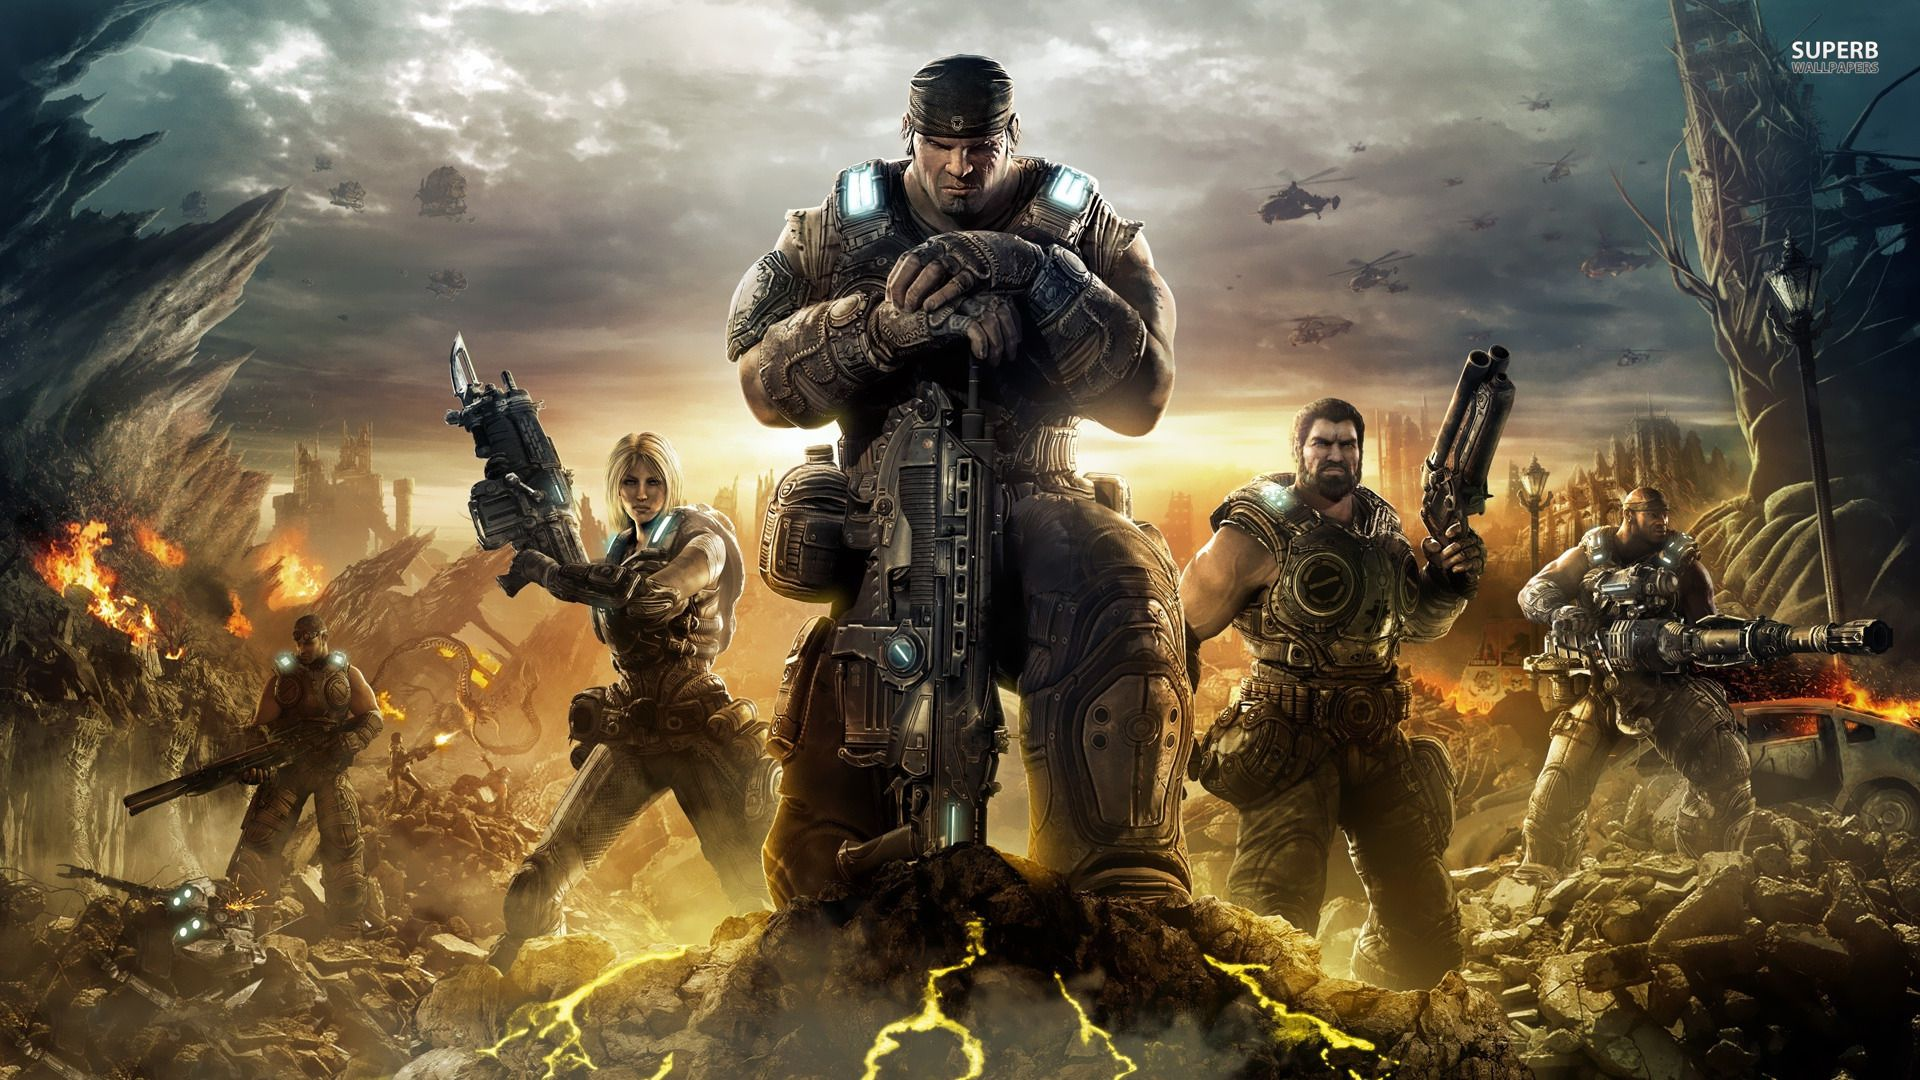 Clayton Carmine And Drone Gears Of War Wallpaper 1024 819 Gears Of War 3 Backgrounds 38 Wallpapers Adorable Wa Gears Of War 3 Gears Of War Gears Of War 2